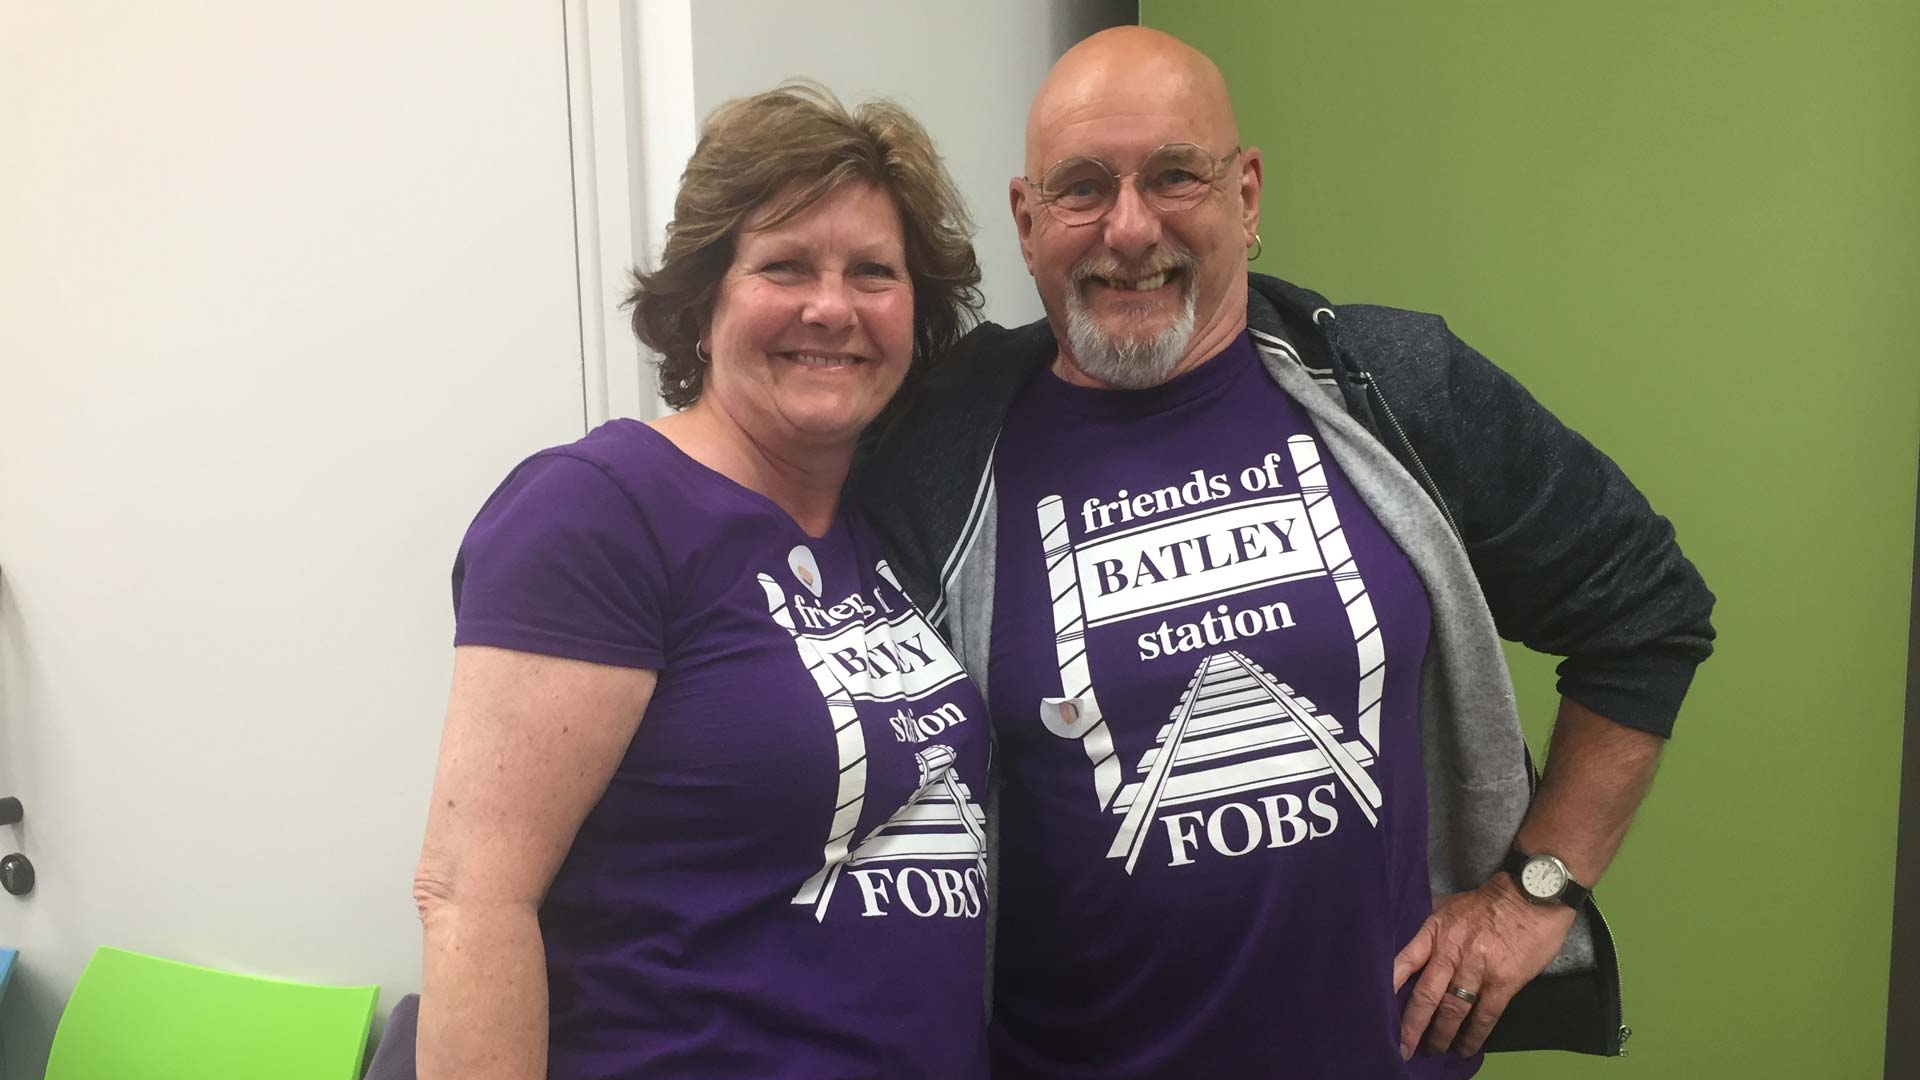 Friends of Batley Station (FOBS)